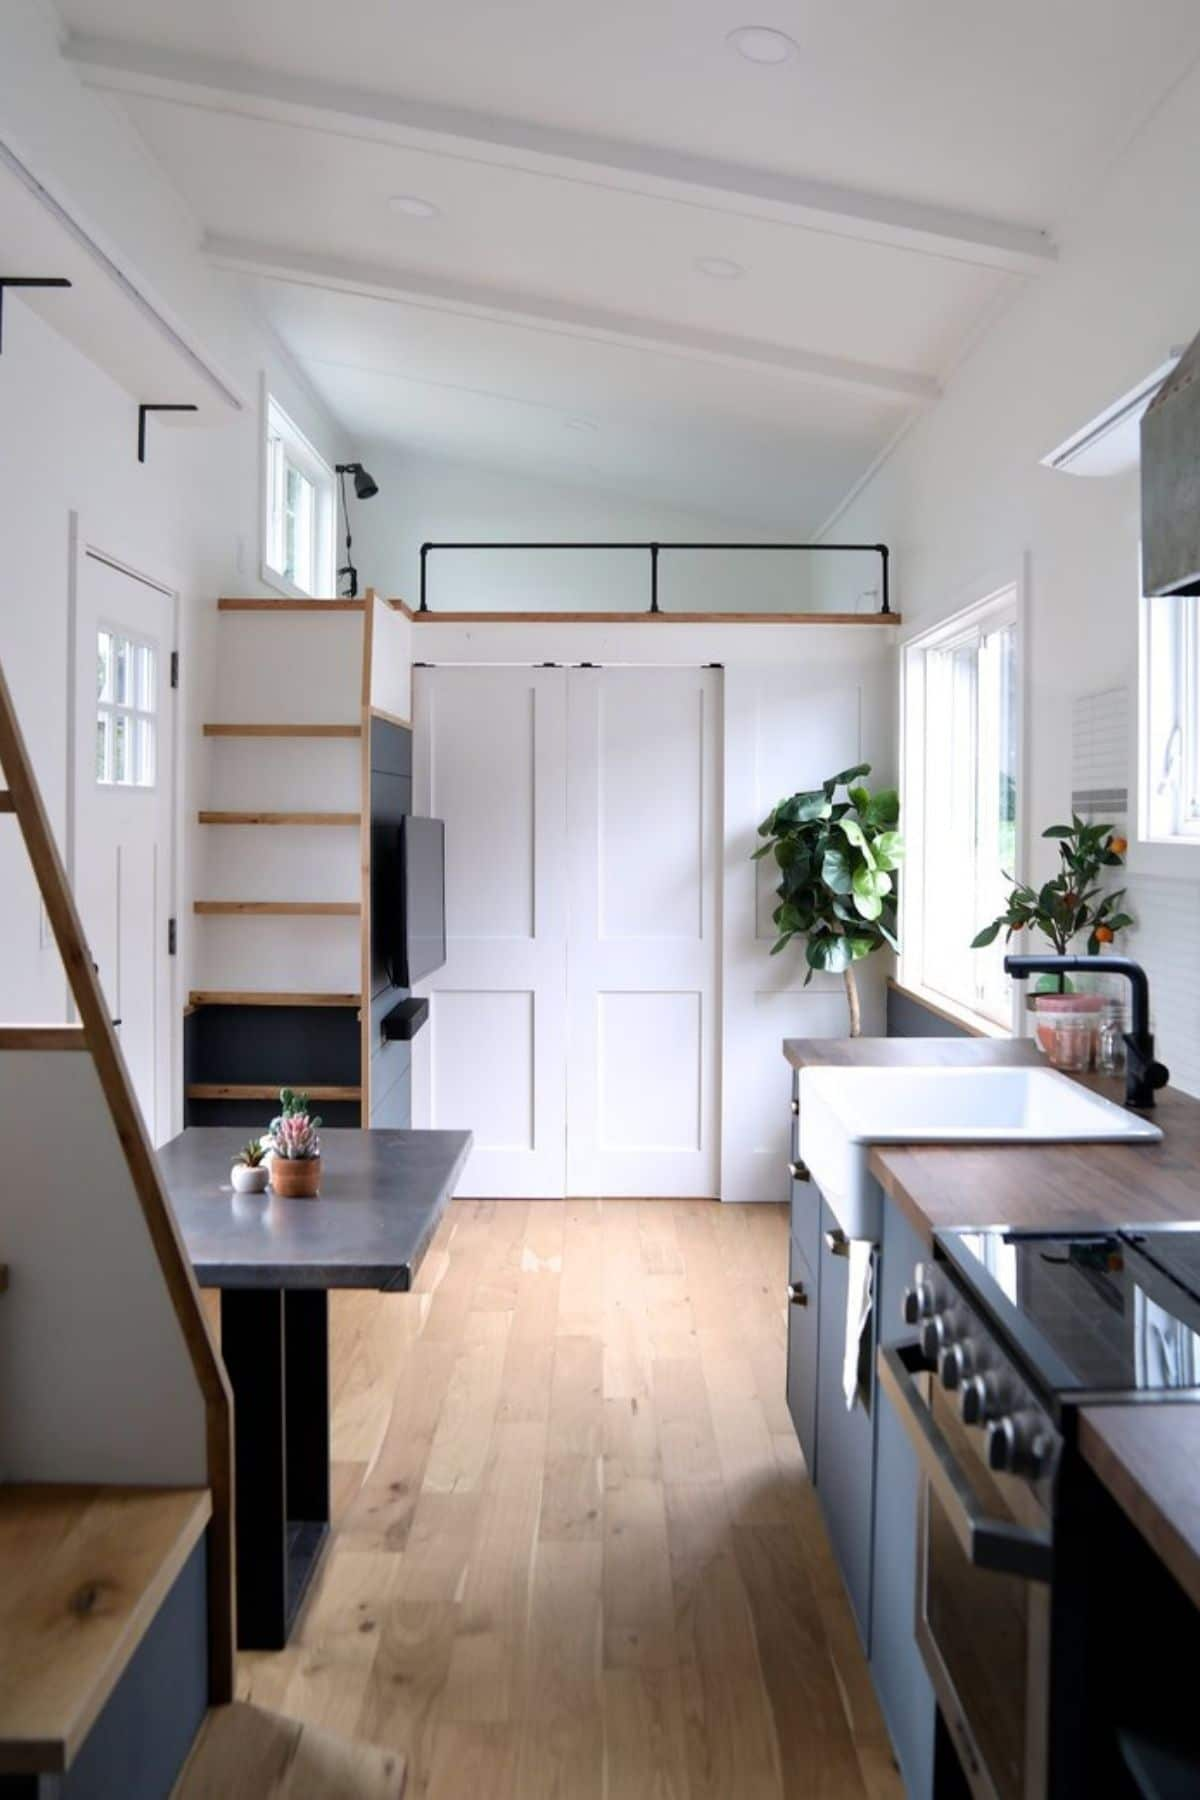 view from kitchen to bedroom at end of tiny home